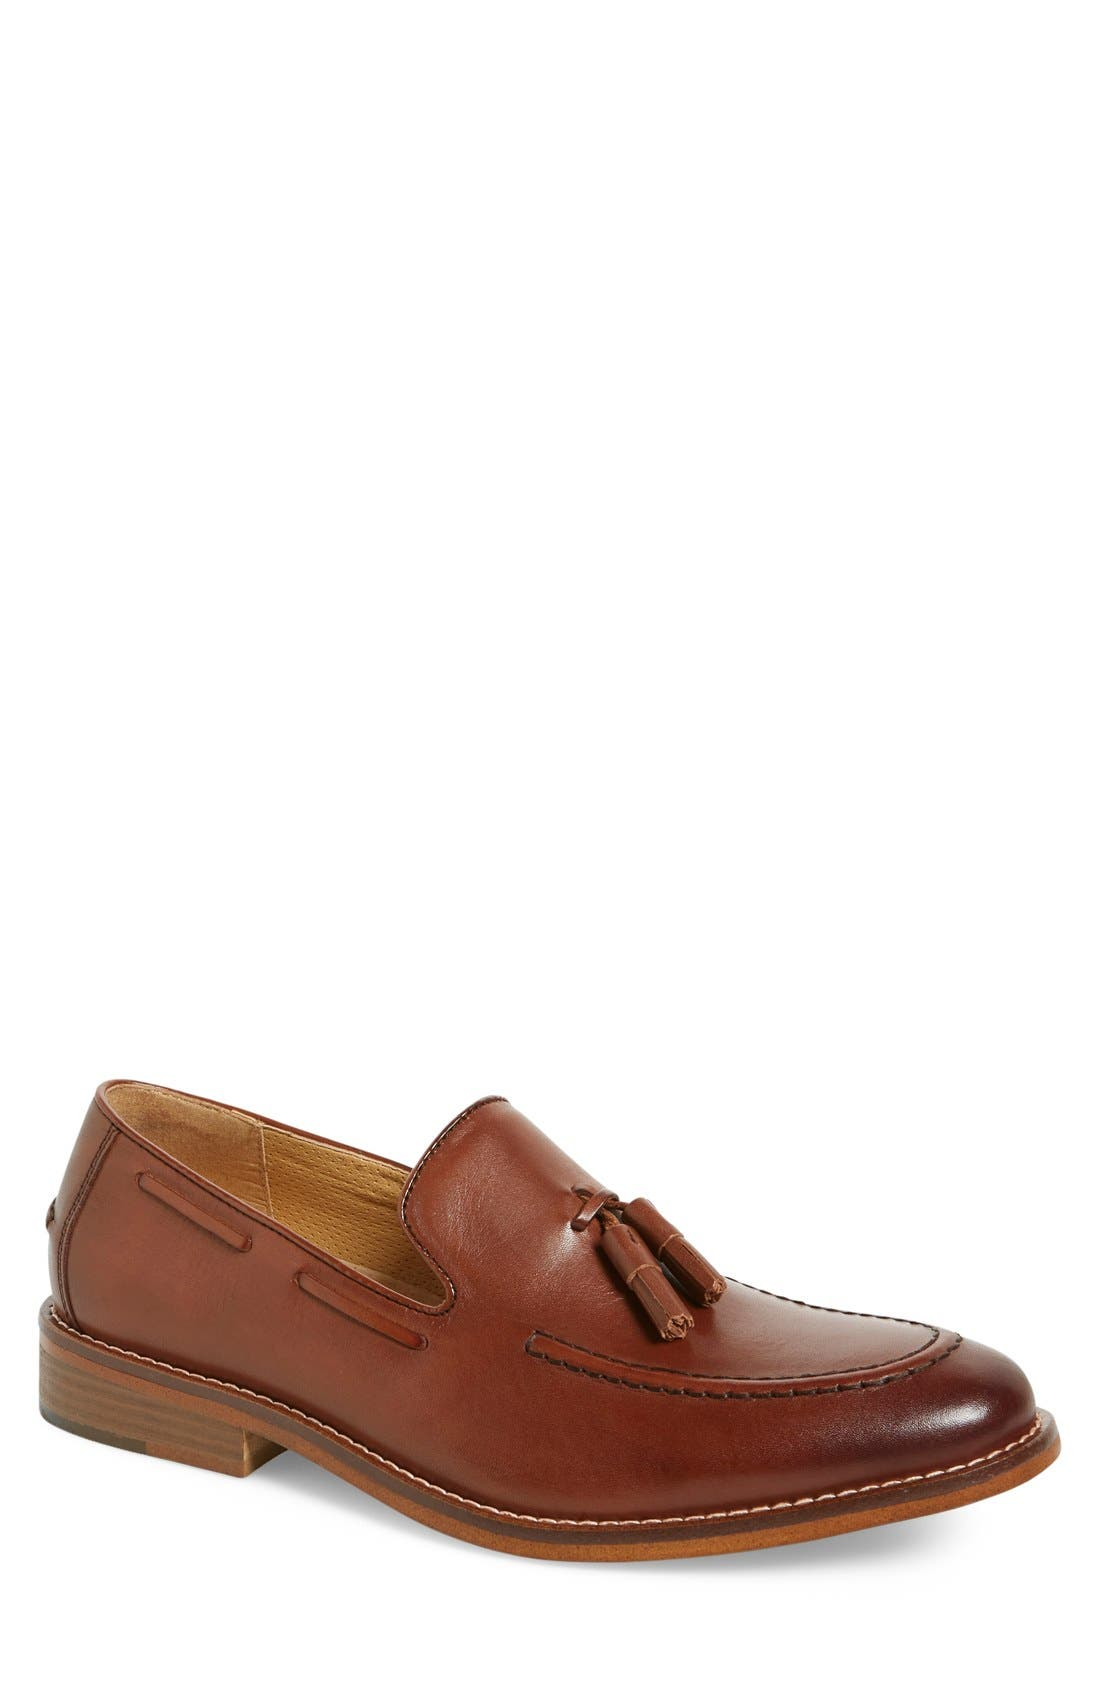 'Cooper' Tassel Loafer,                             Main thumbnail 1, color,                             Tan Leather